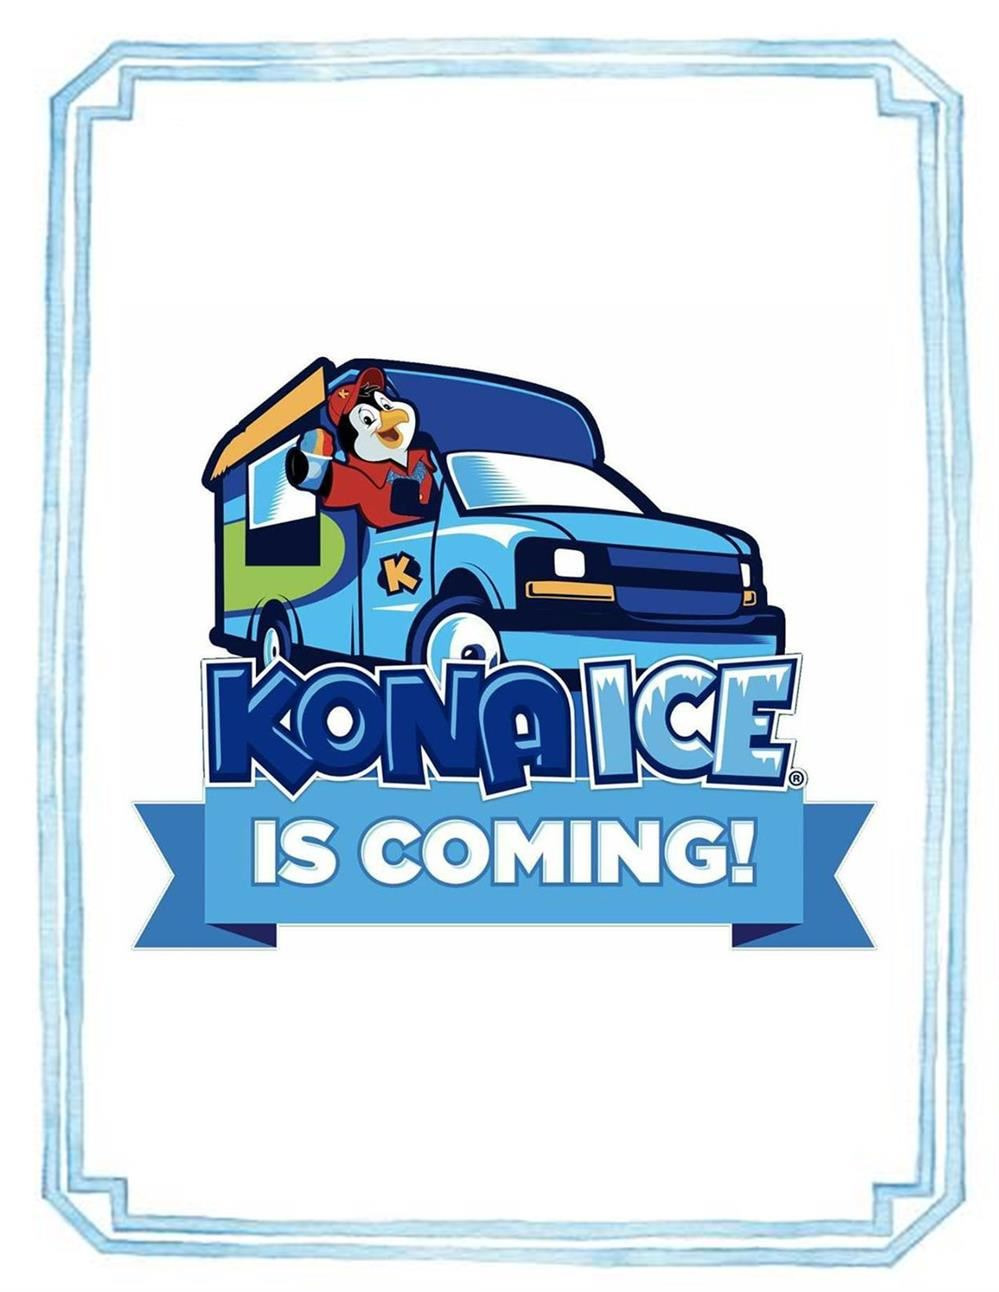 KONA ICE DATES